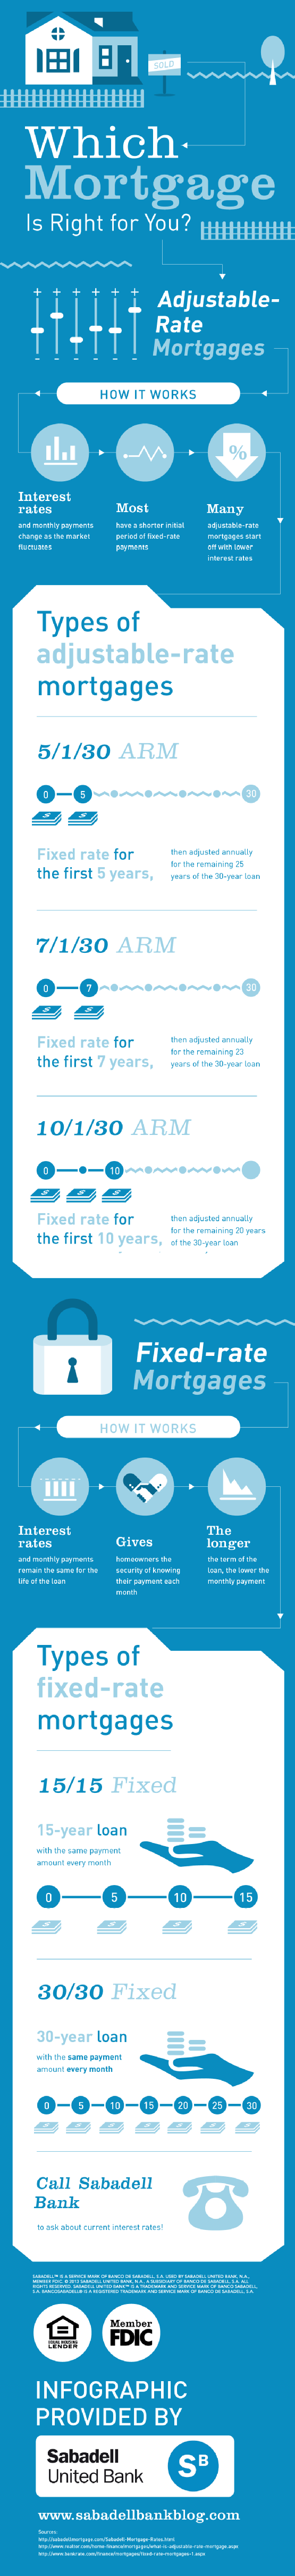 which-mortgage-is-right-for-you_52579c0023793